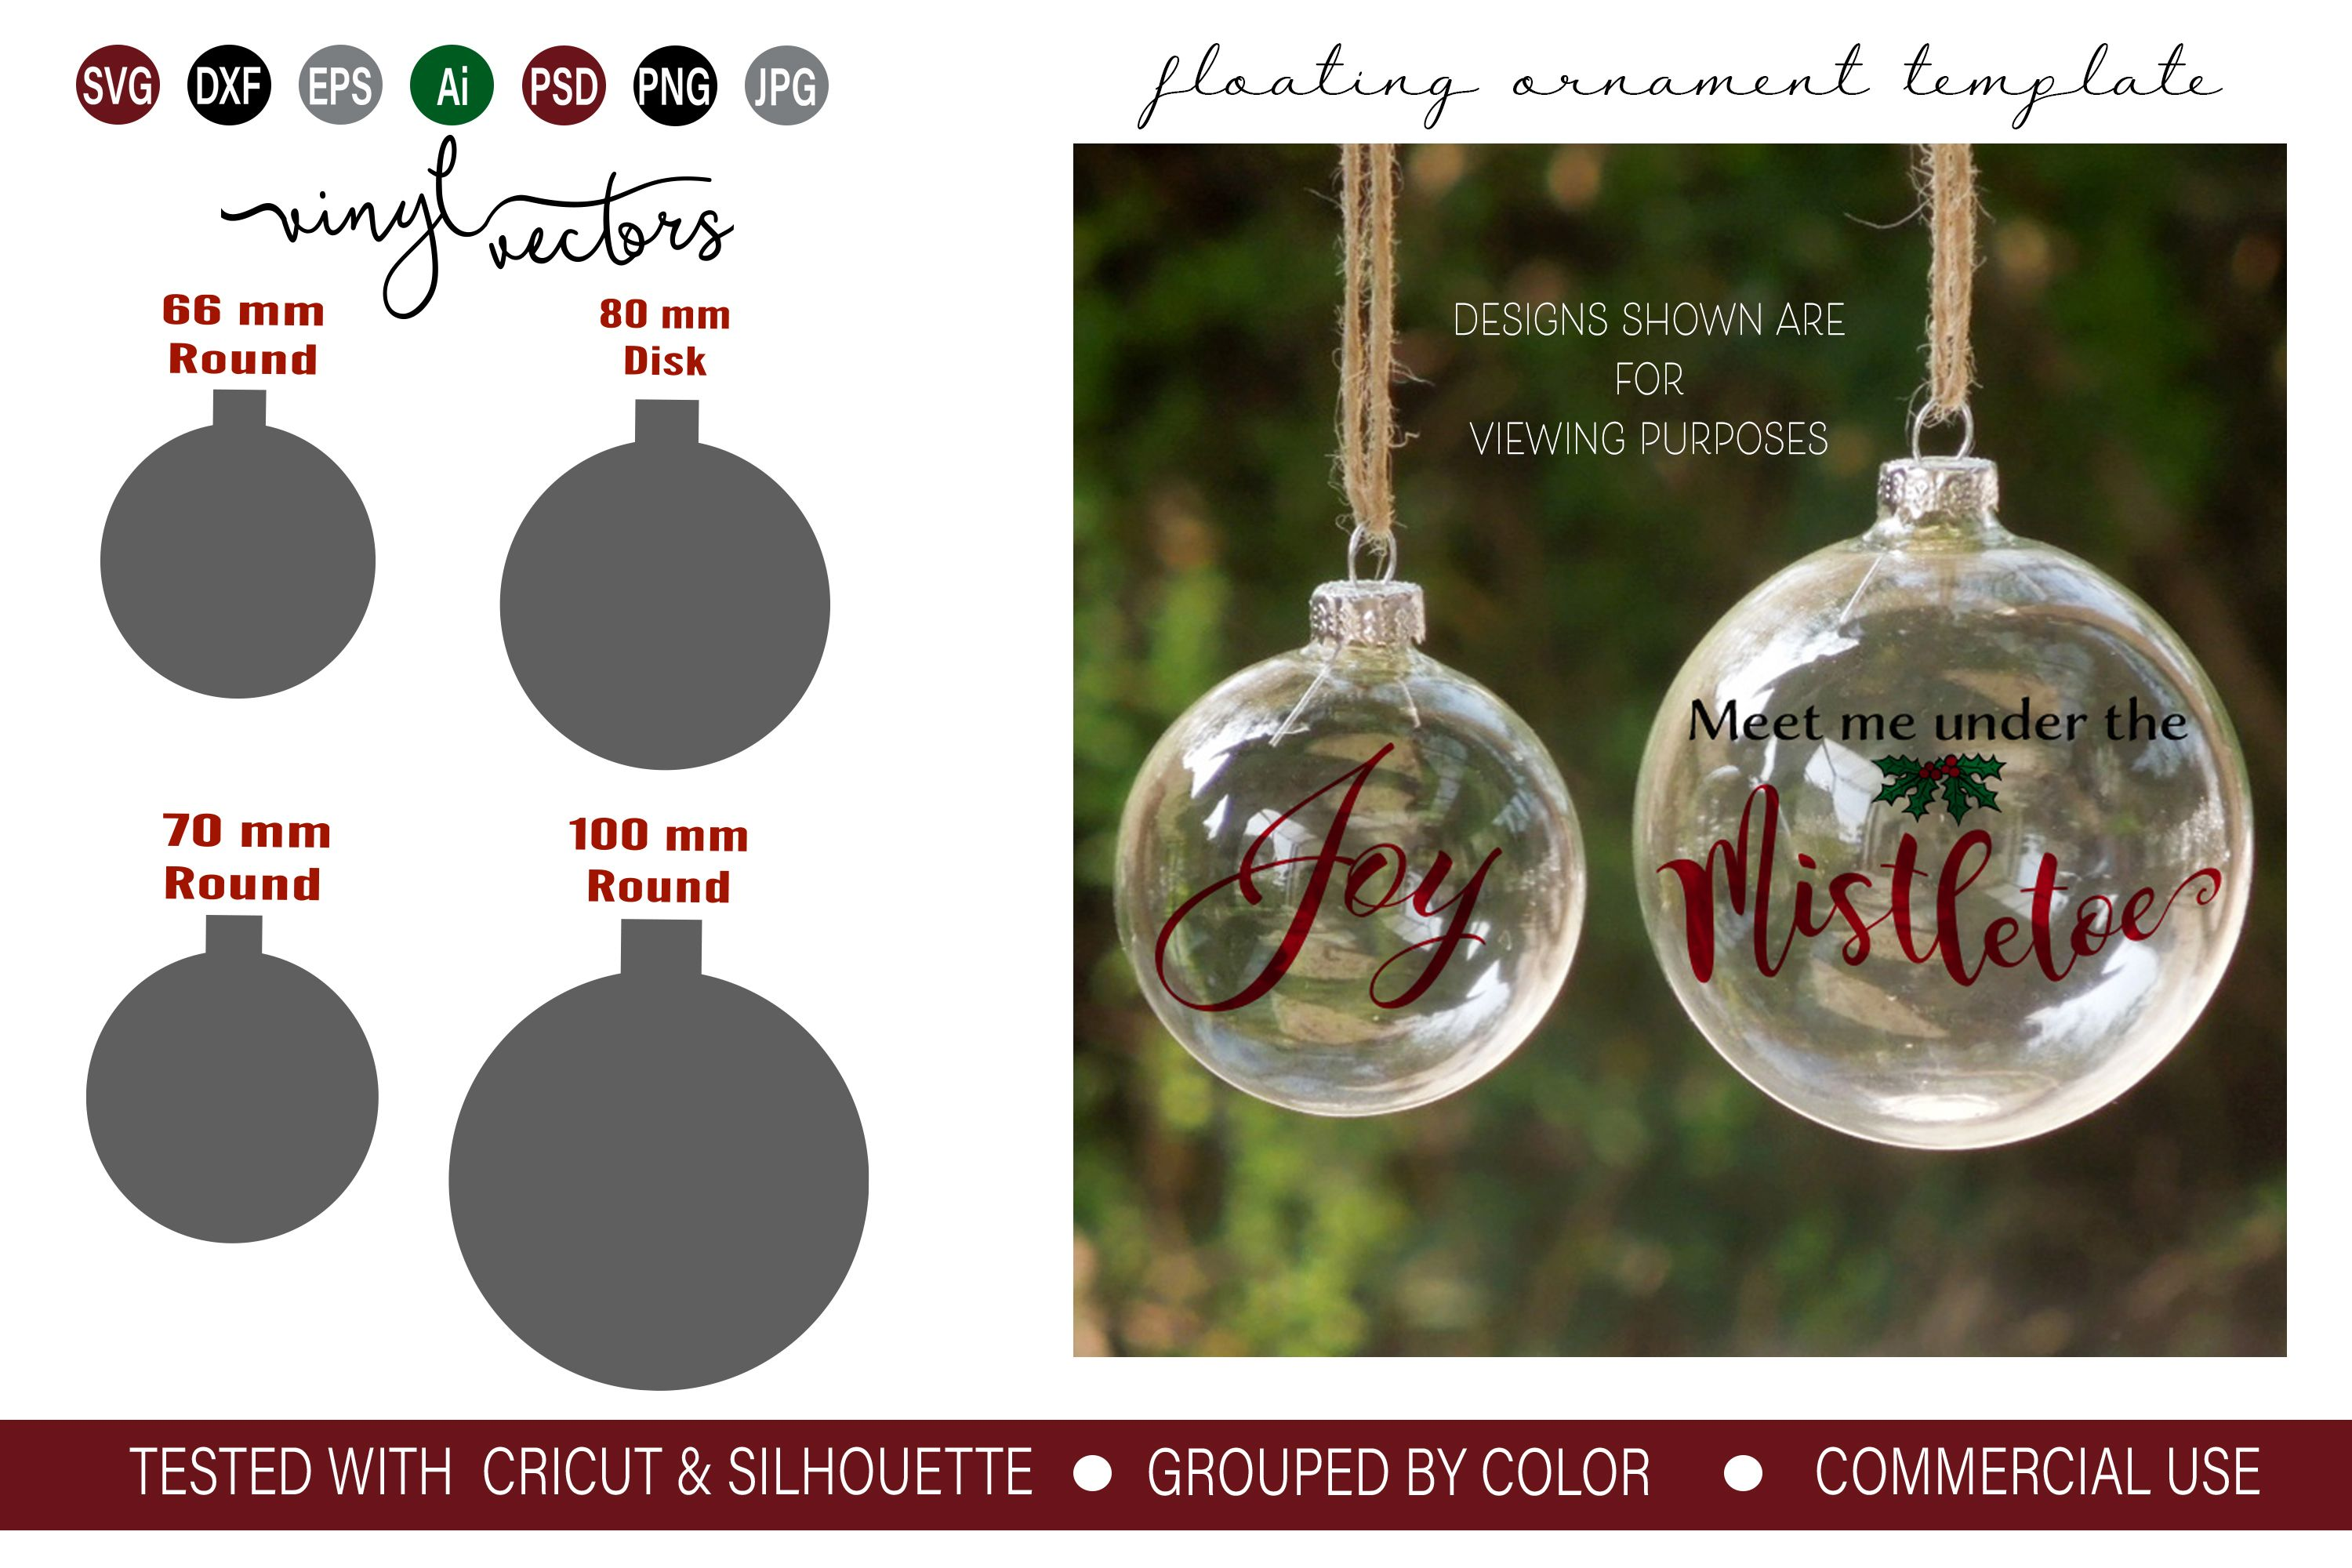 44+ Christmas ornament size chart ideas in 2021